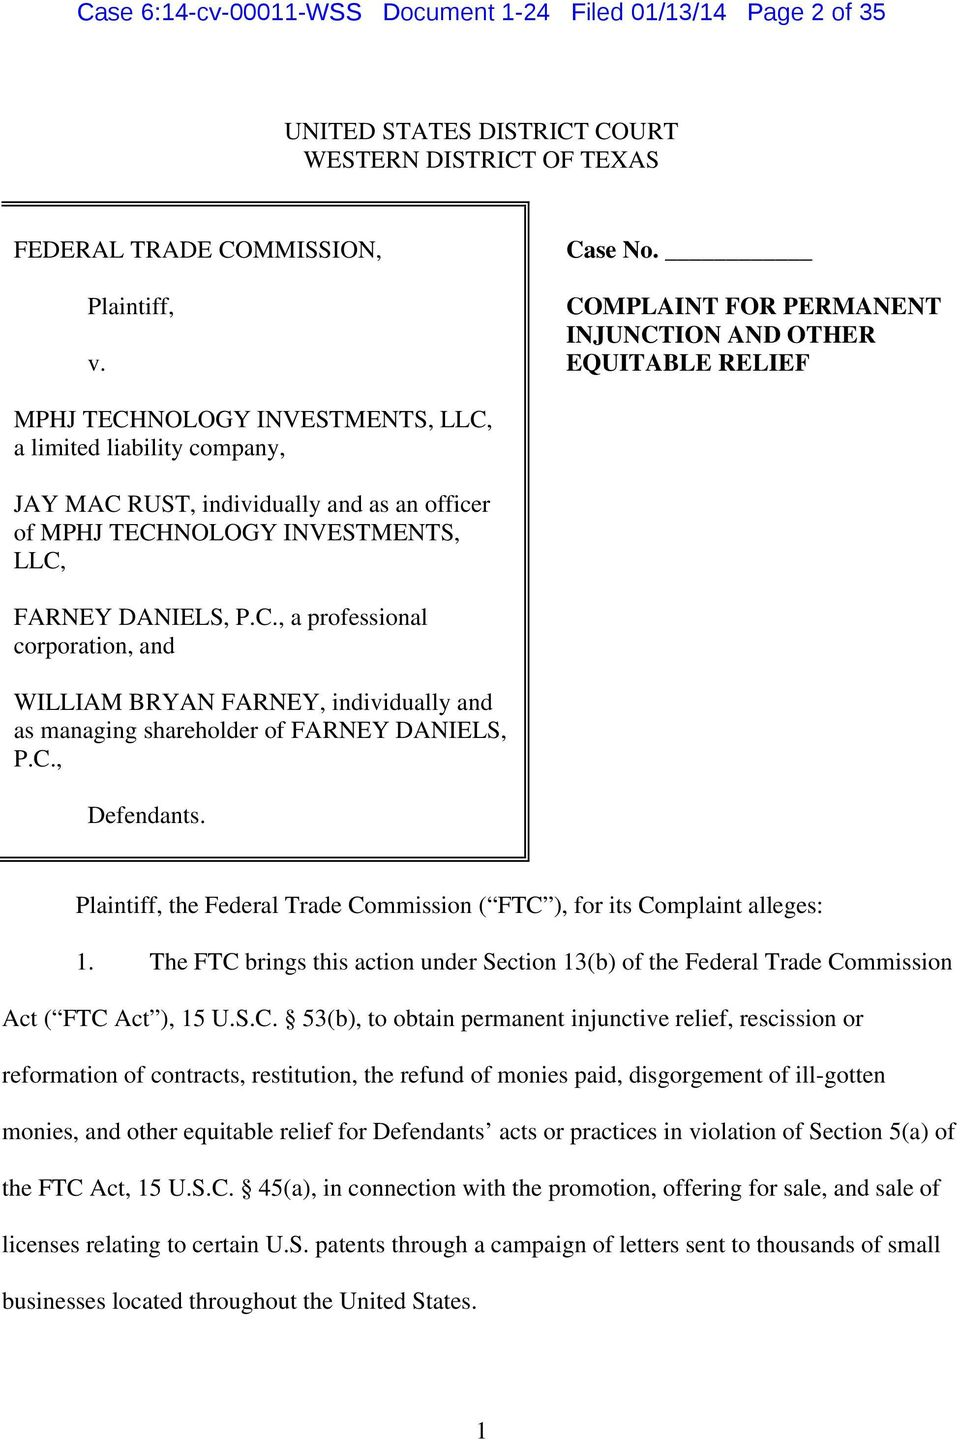 INVESTMENTS, LLC, FARNEY DANIELS, P.C., a professional corporation, and WILLIAM BRYAN FARNEY, individually and as managing shareholder of FARNEY DANIELS, P.C., Defendants.